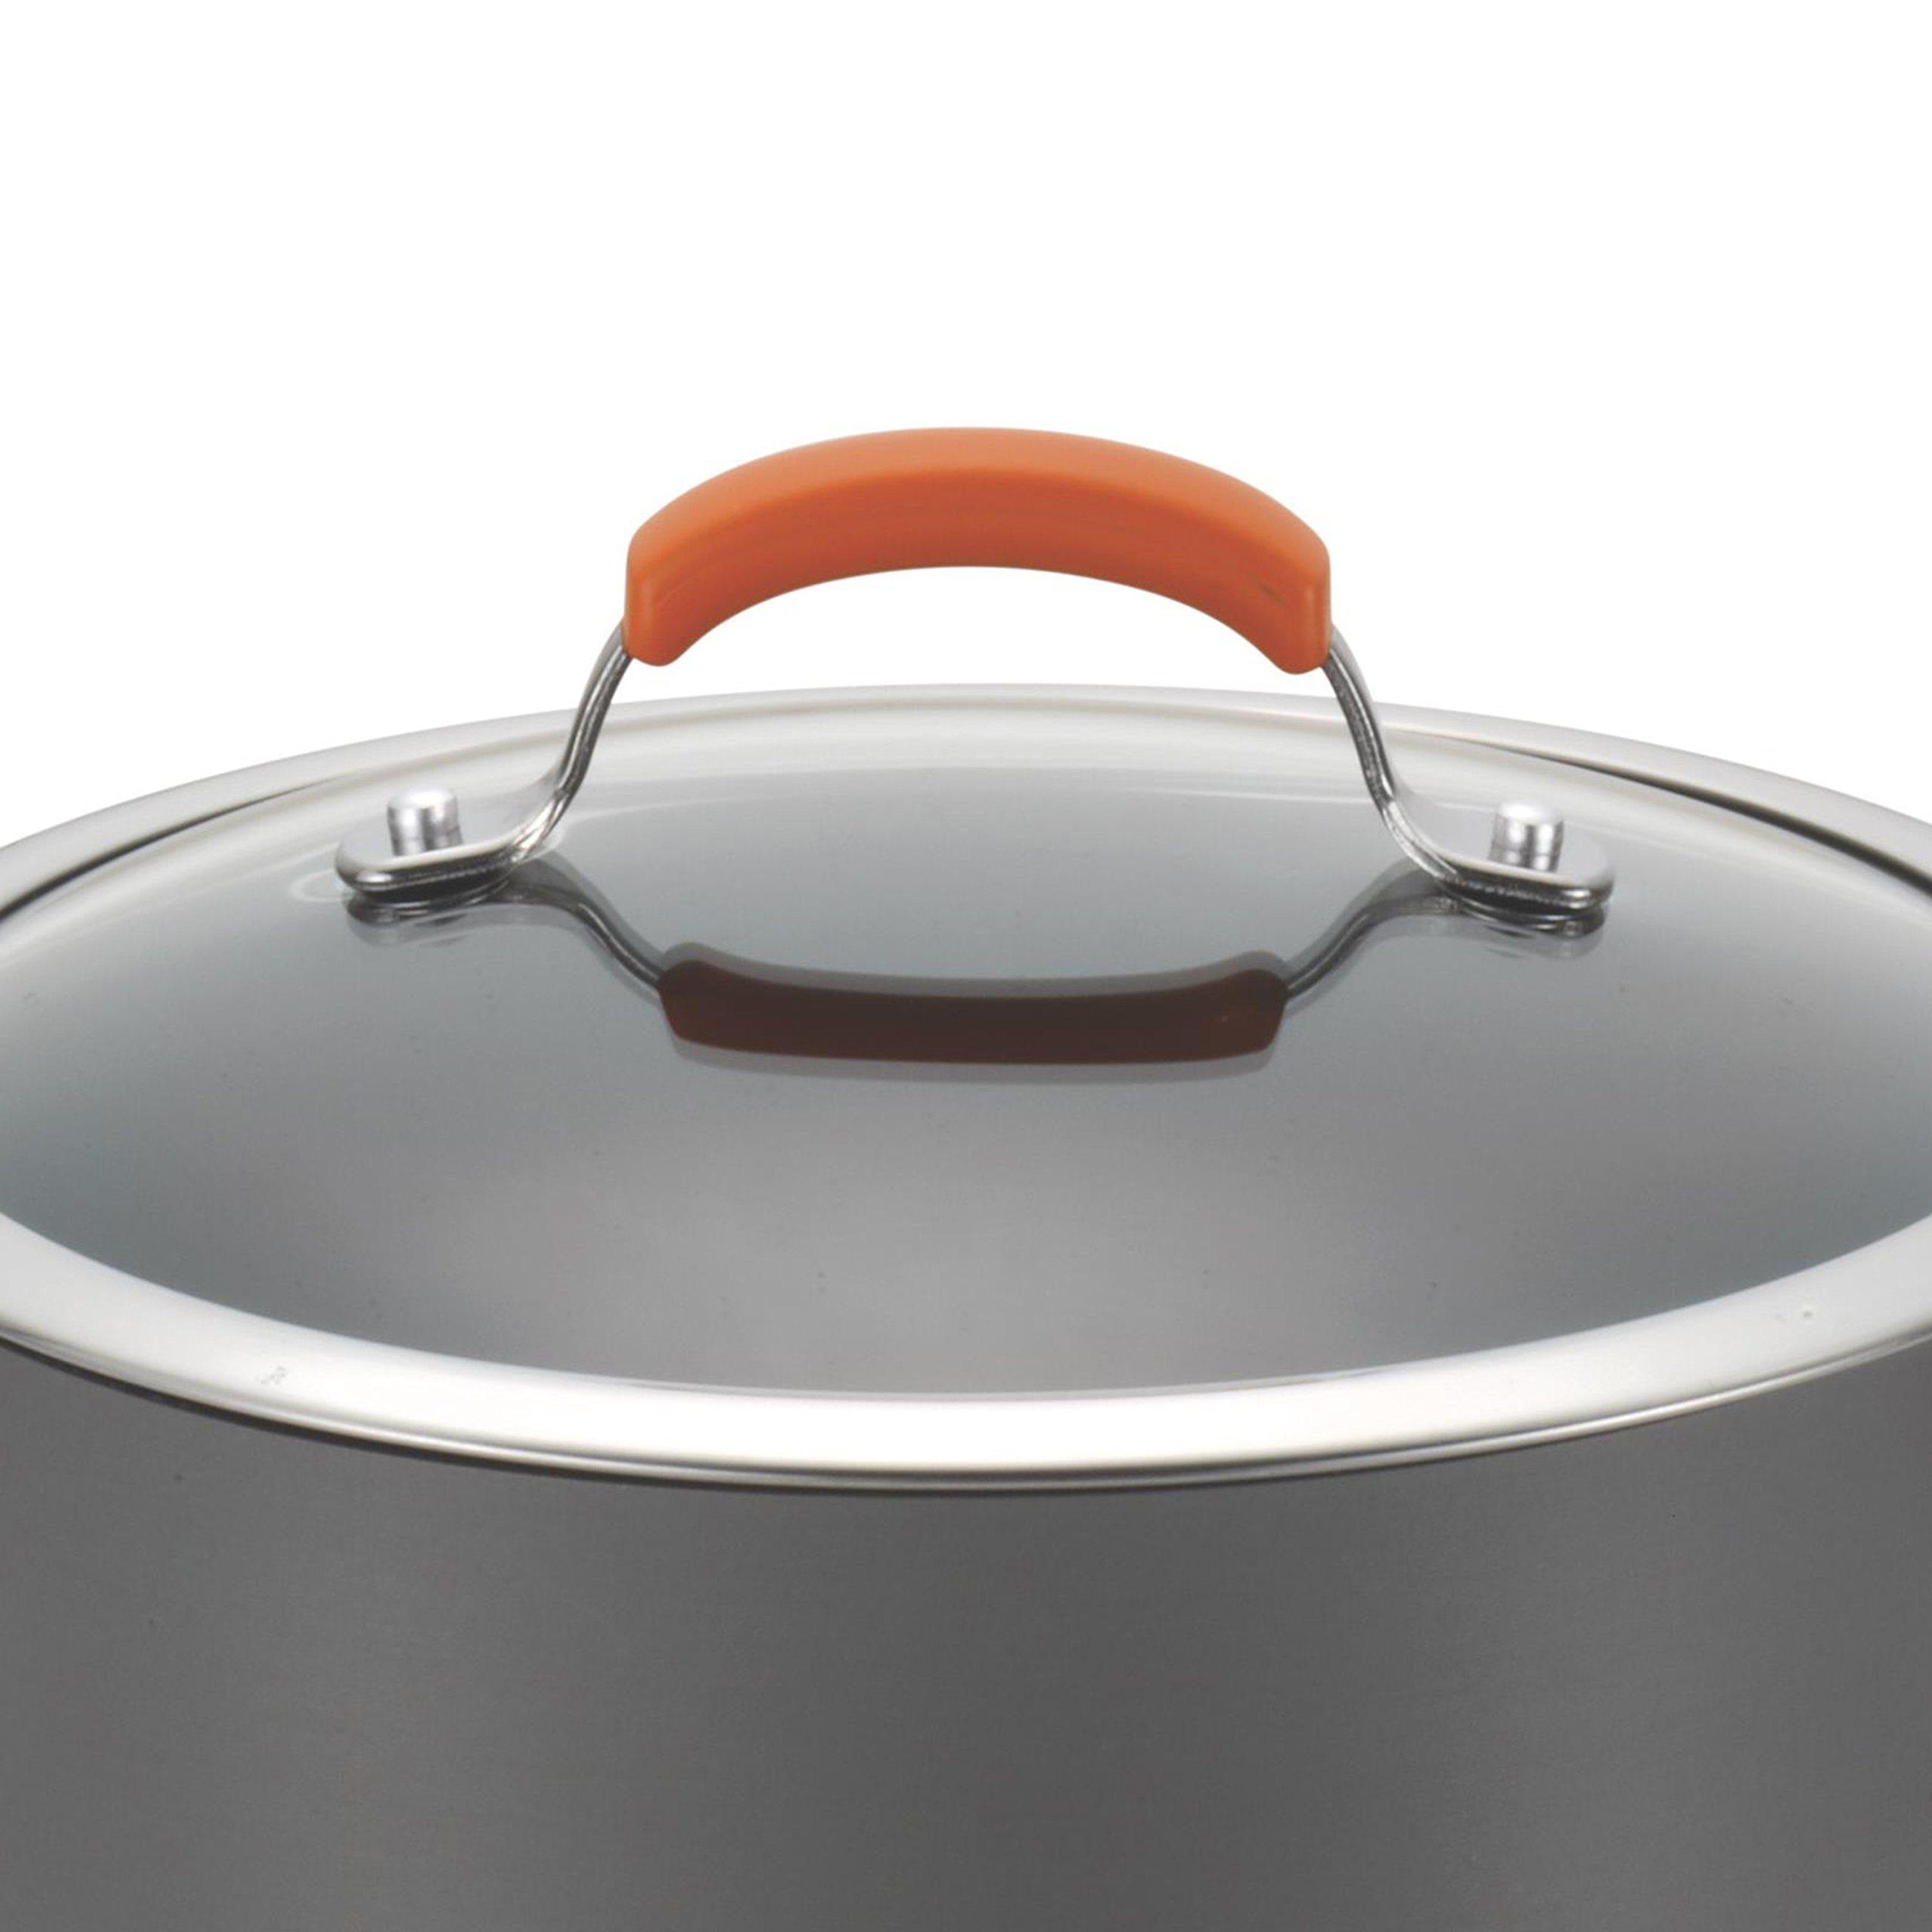 Rachael Ray Hard Anodized II Nonstick Dishwasher Safe 10-Piece Cookware Set, Orange by Rachael Ray (Image #13)